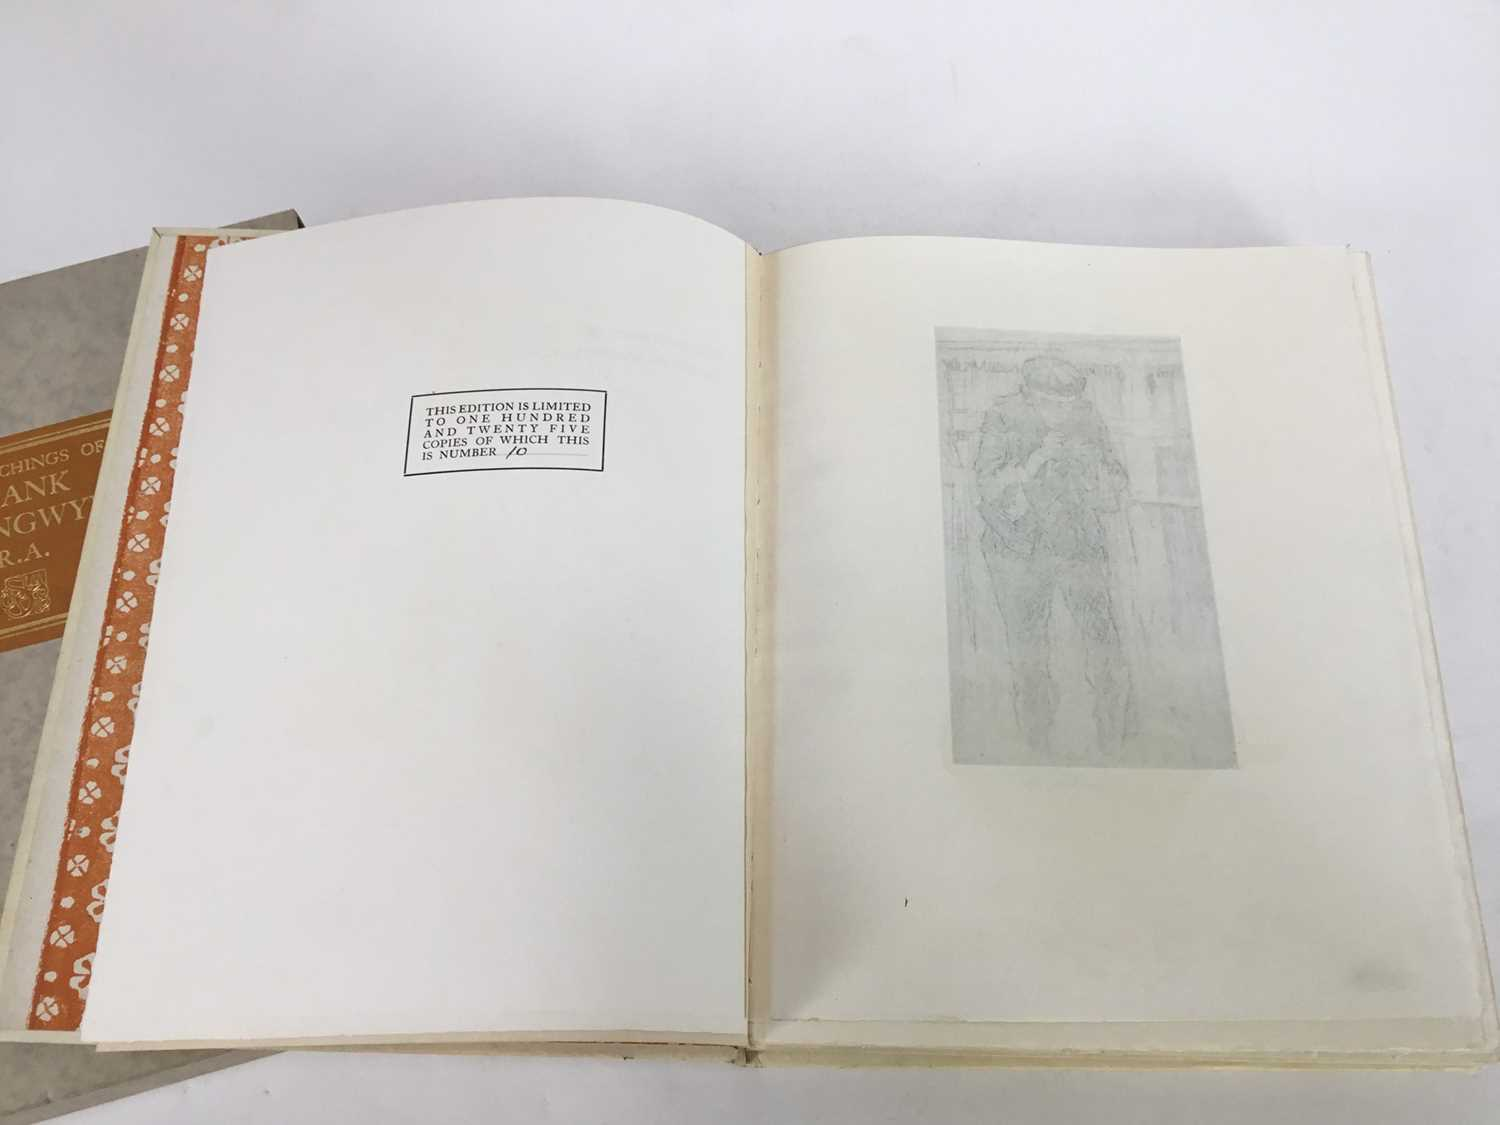 Book - The Etchings of Frank Brangwyn, R.A. A Catalogue Raisonne By W. Gaunt, limited edition 10/125 - Image 3 of 8